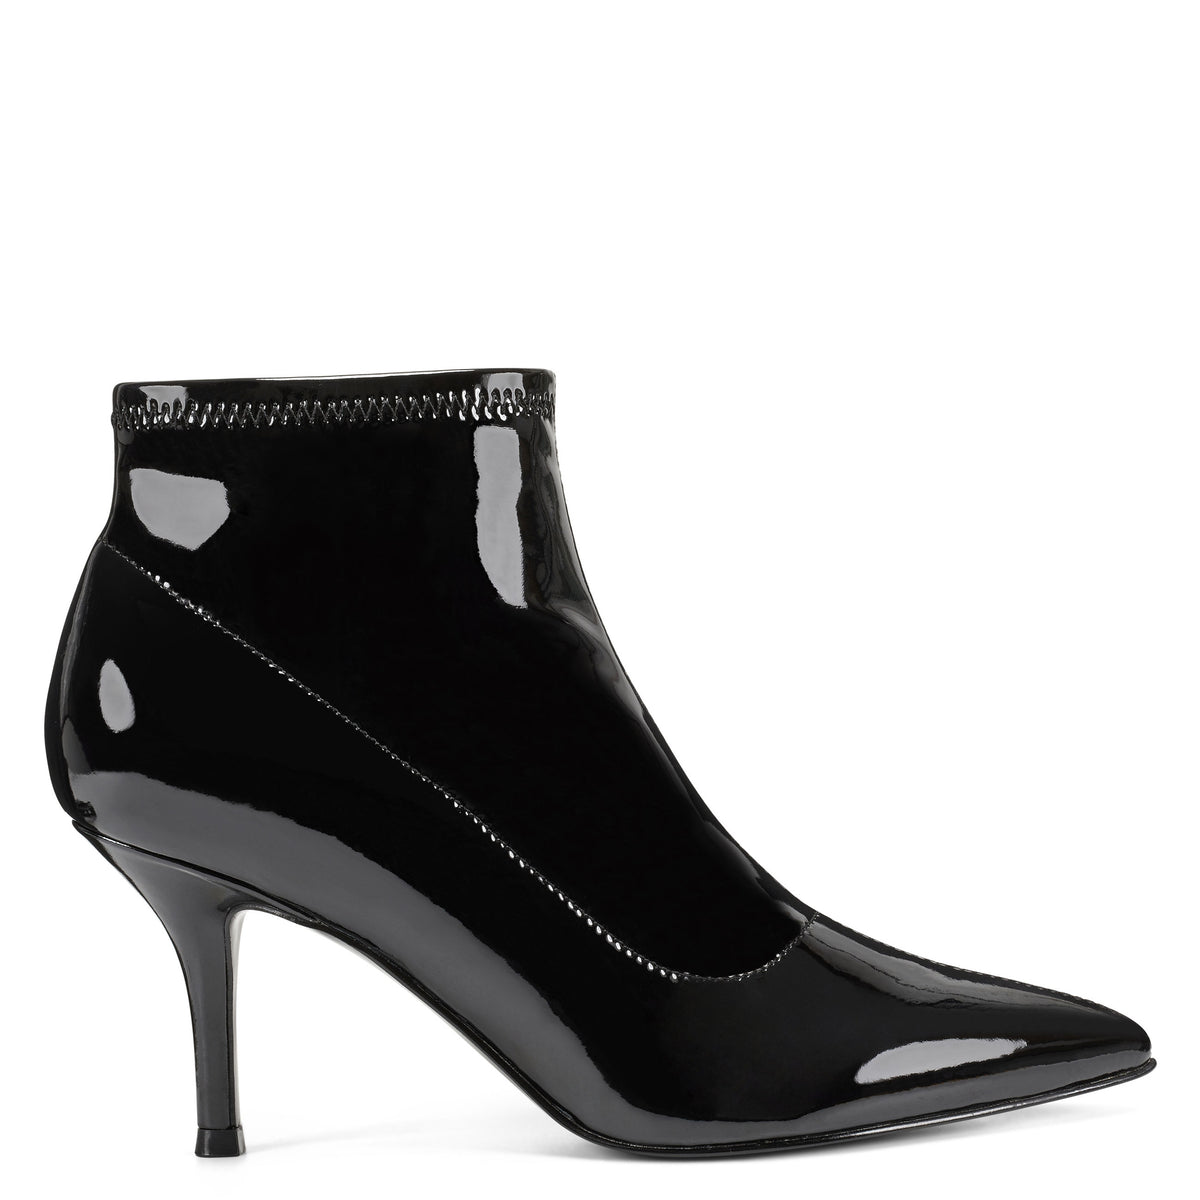 Pearce dress bootie